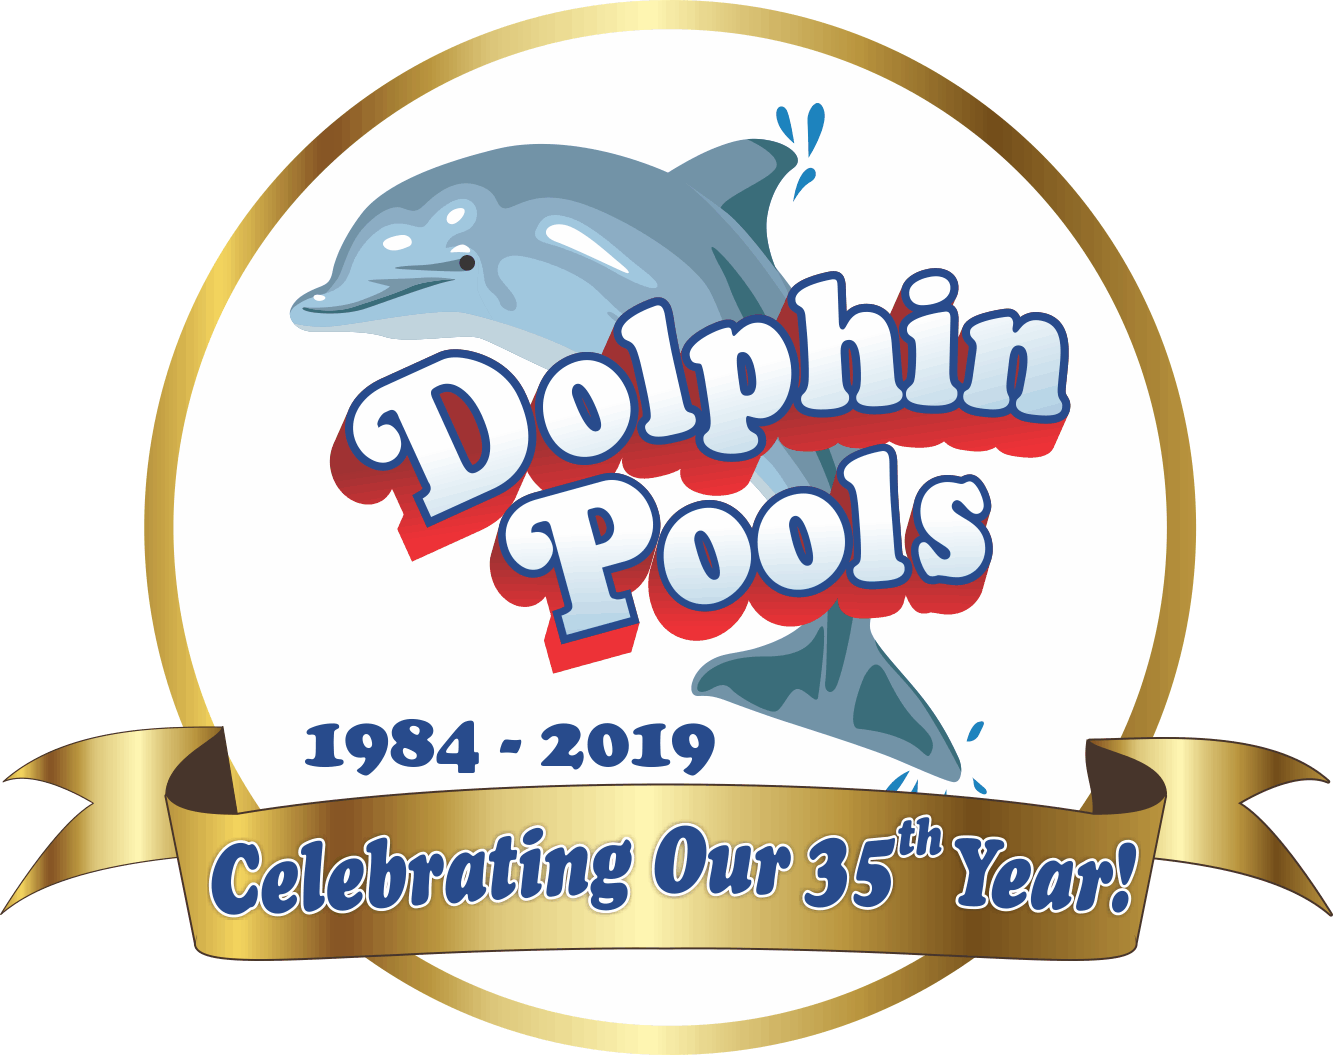 #1 Pool Builder Arizona - Dolphin Pools